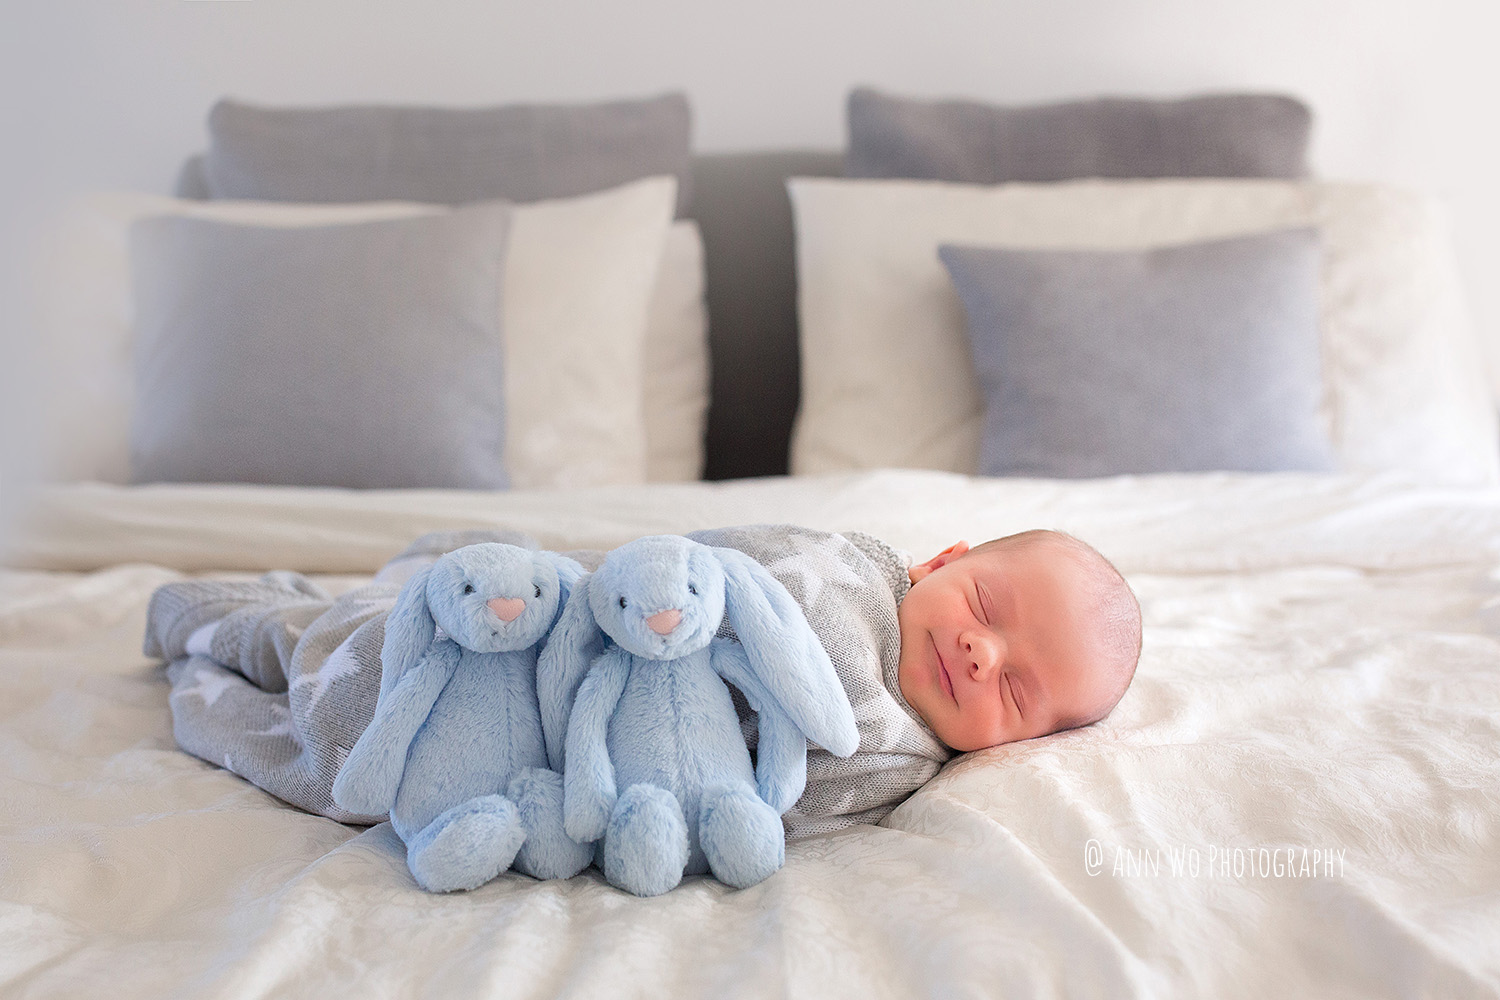 lifestyle-newborn-photography-london-baby-with-toys-smiling-sleeping.JPG